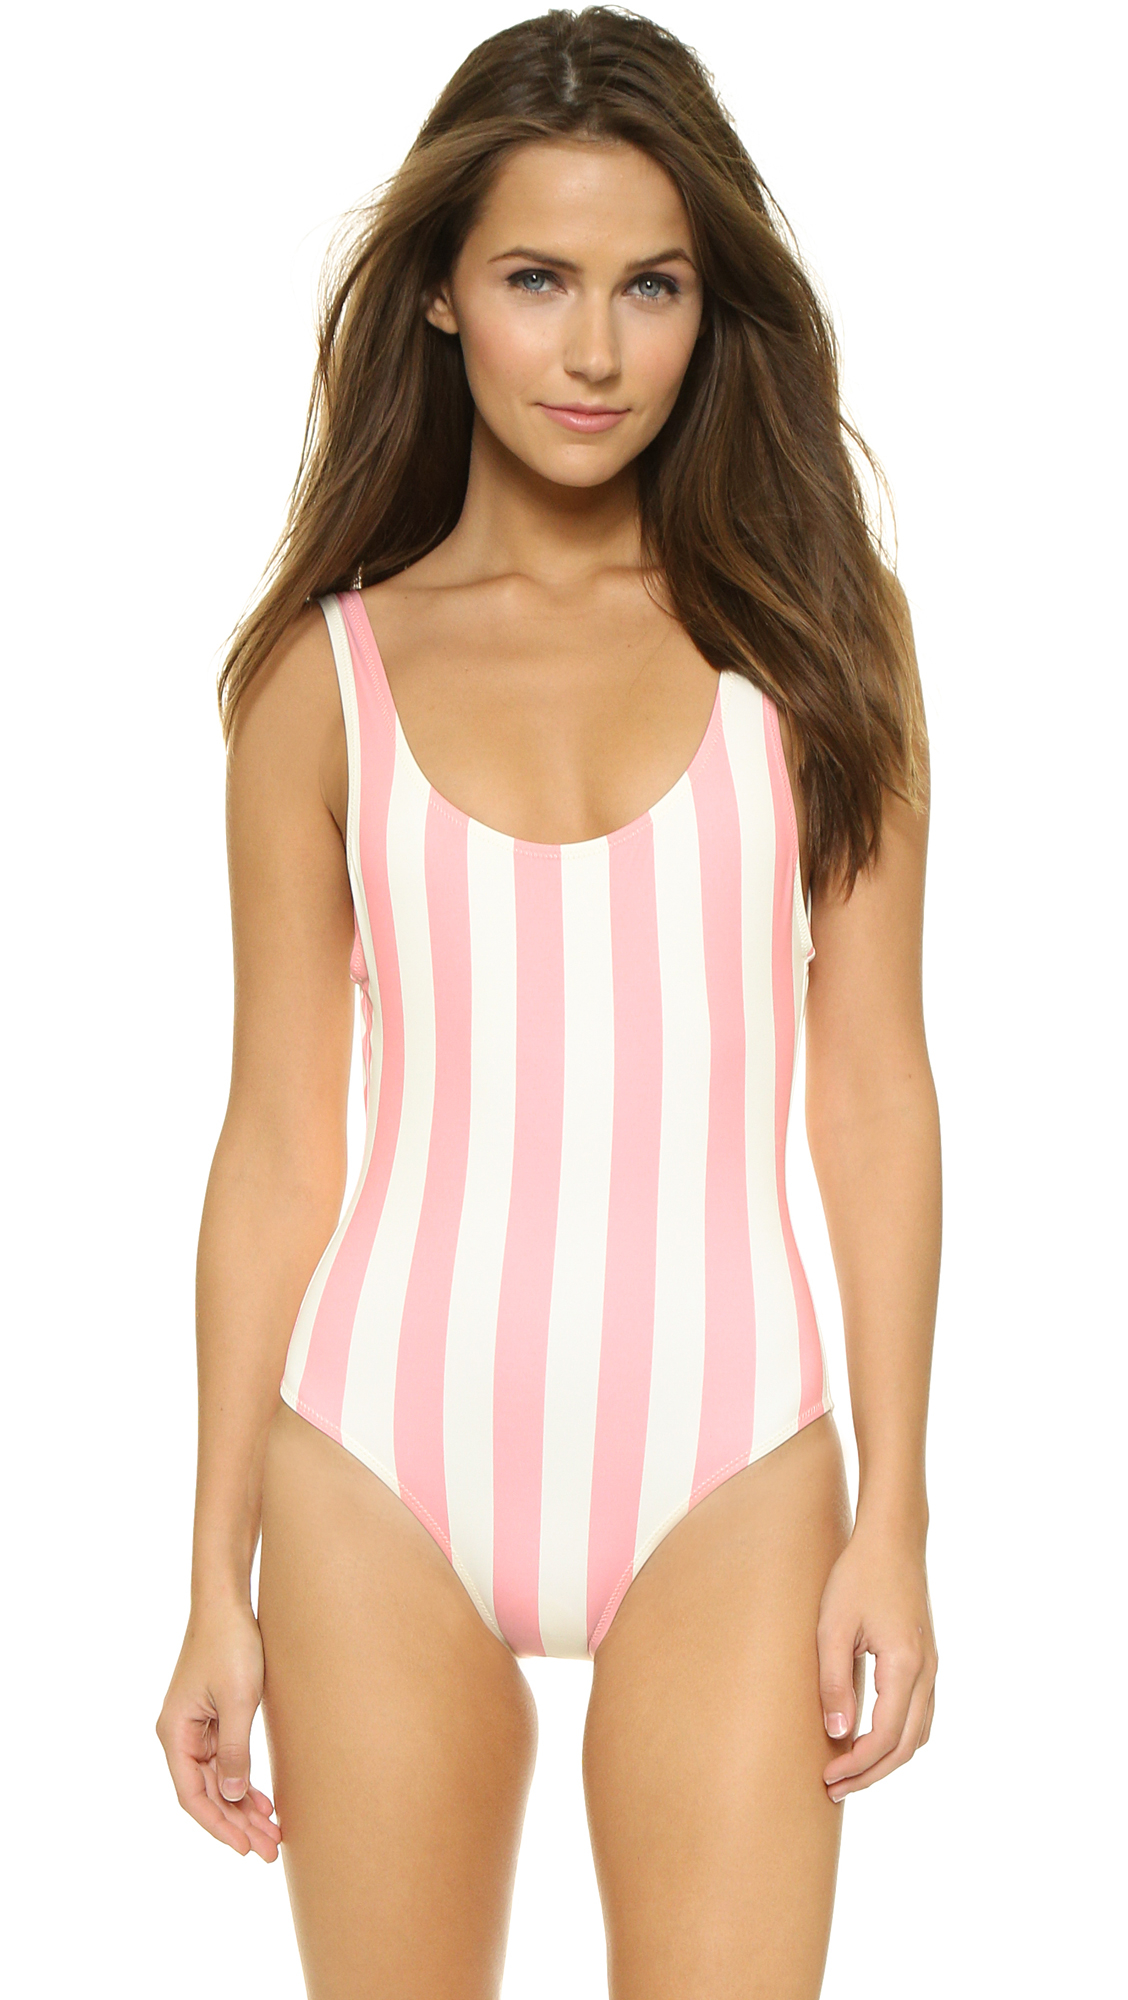 acfc3701a77 Lyst - Solid   Striped The Anne Marie One Piece Swimsuit - Pink ...